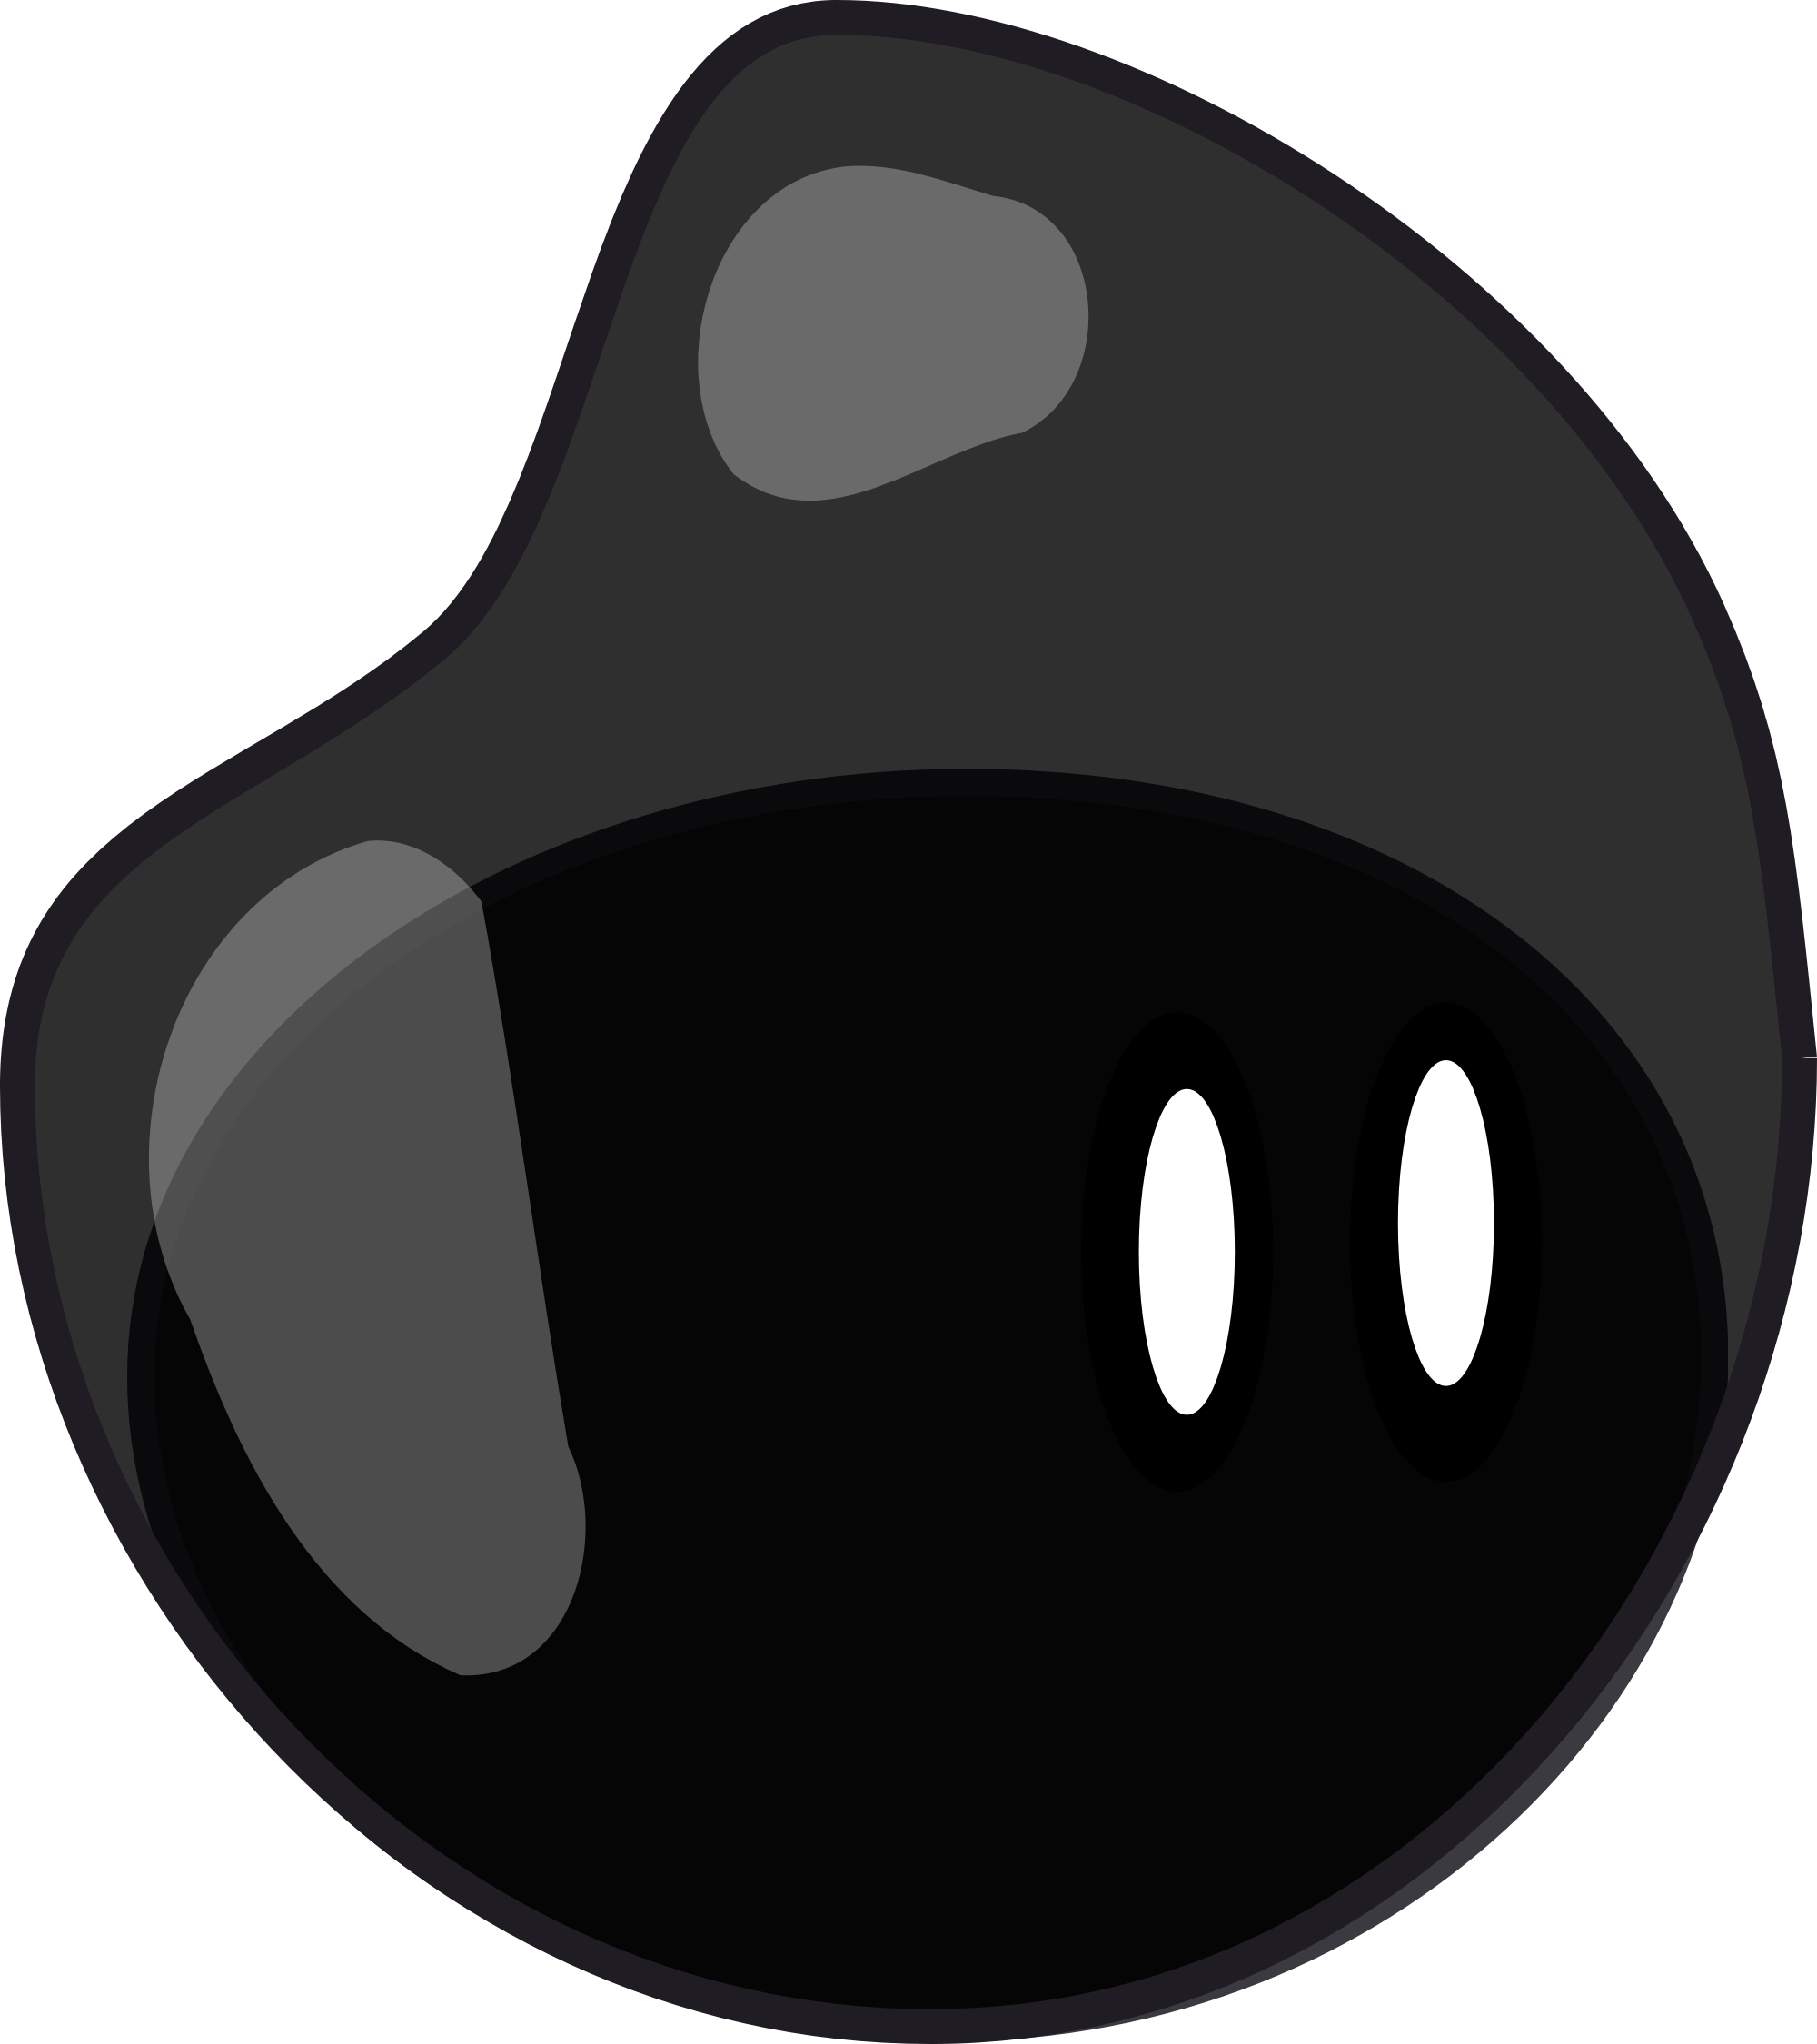 Jelly clipart outline. Black fixed icons png